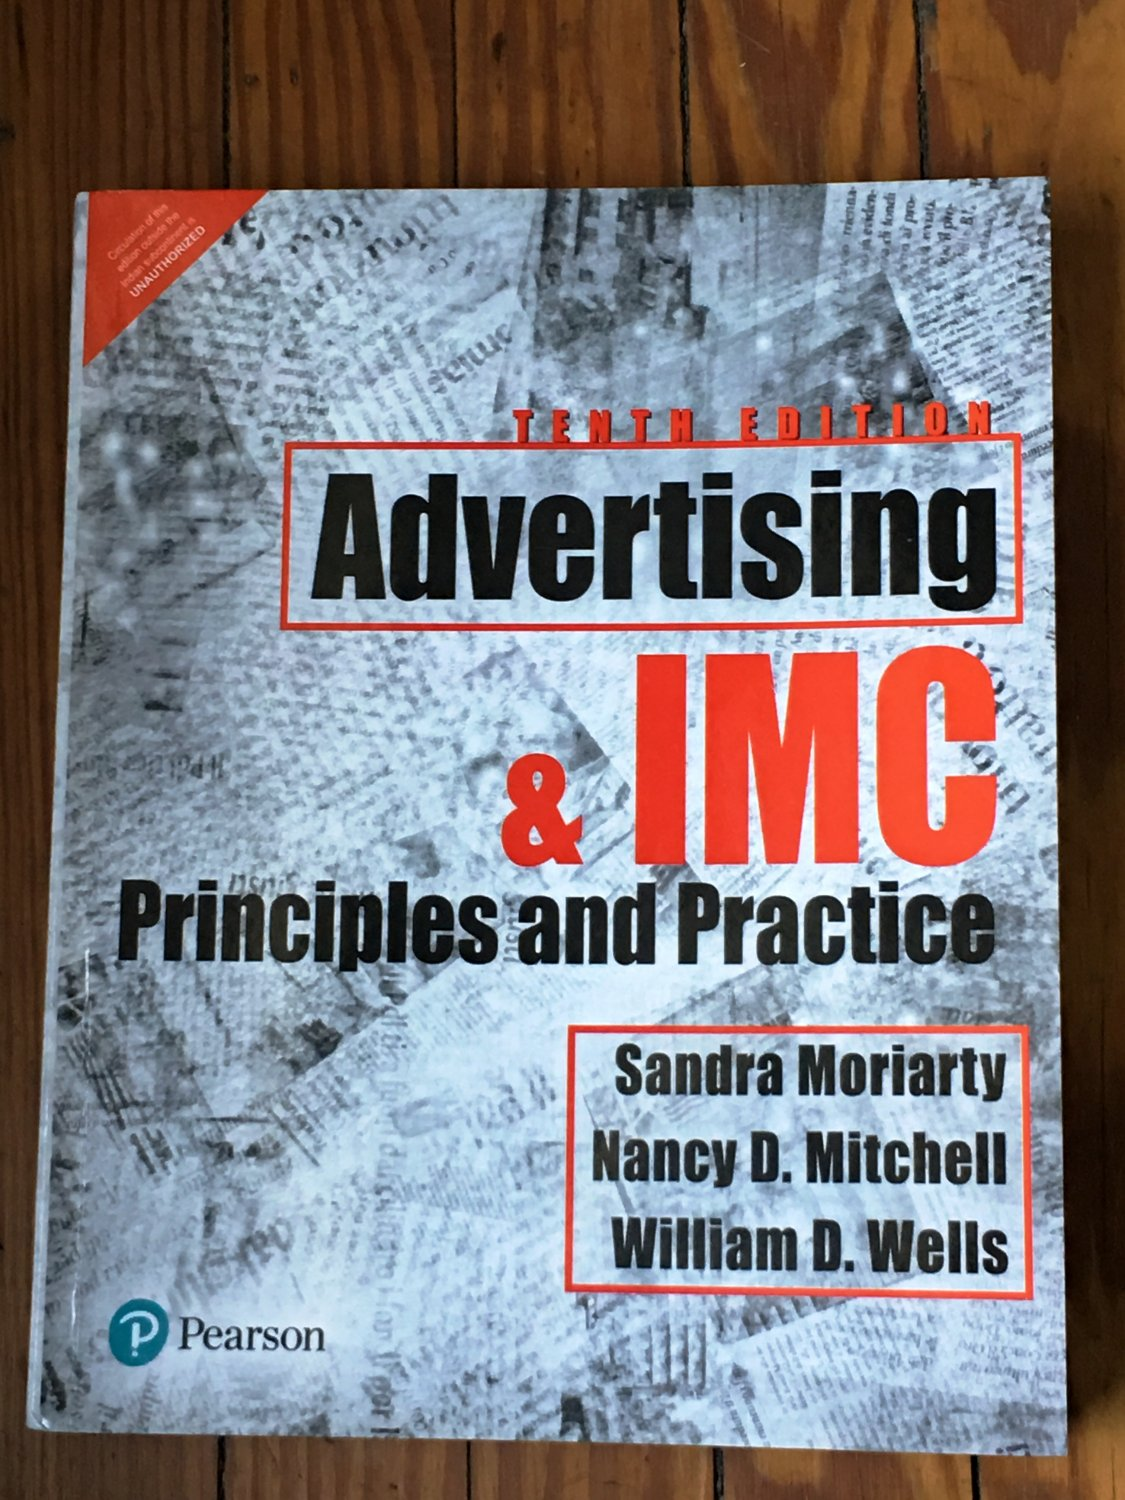 Advertising & IMC: Principles and Practice, 10th Edition by Sandra Moriarty, Nancy Mitchell